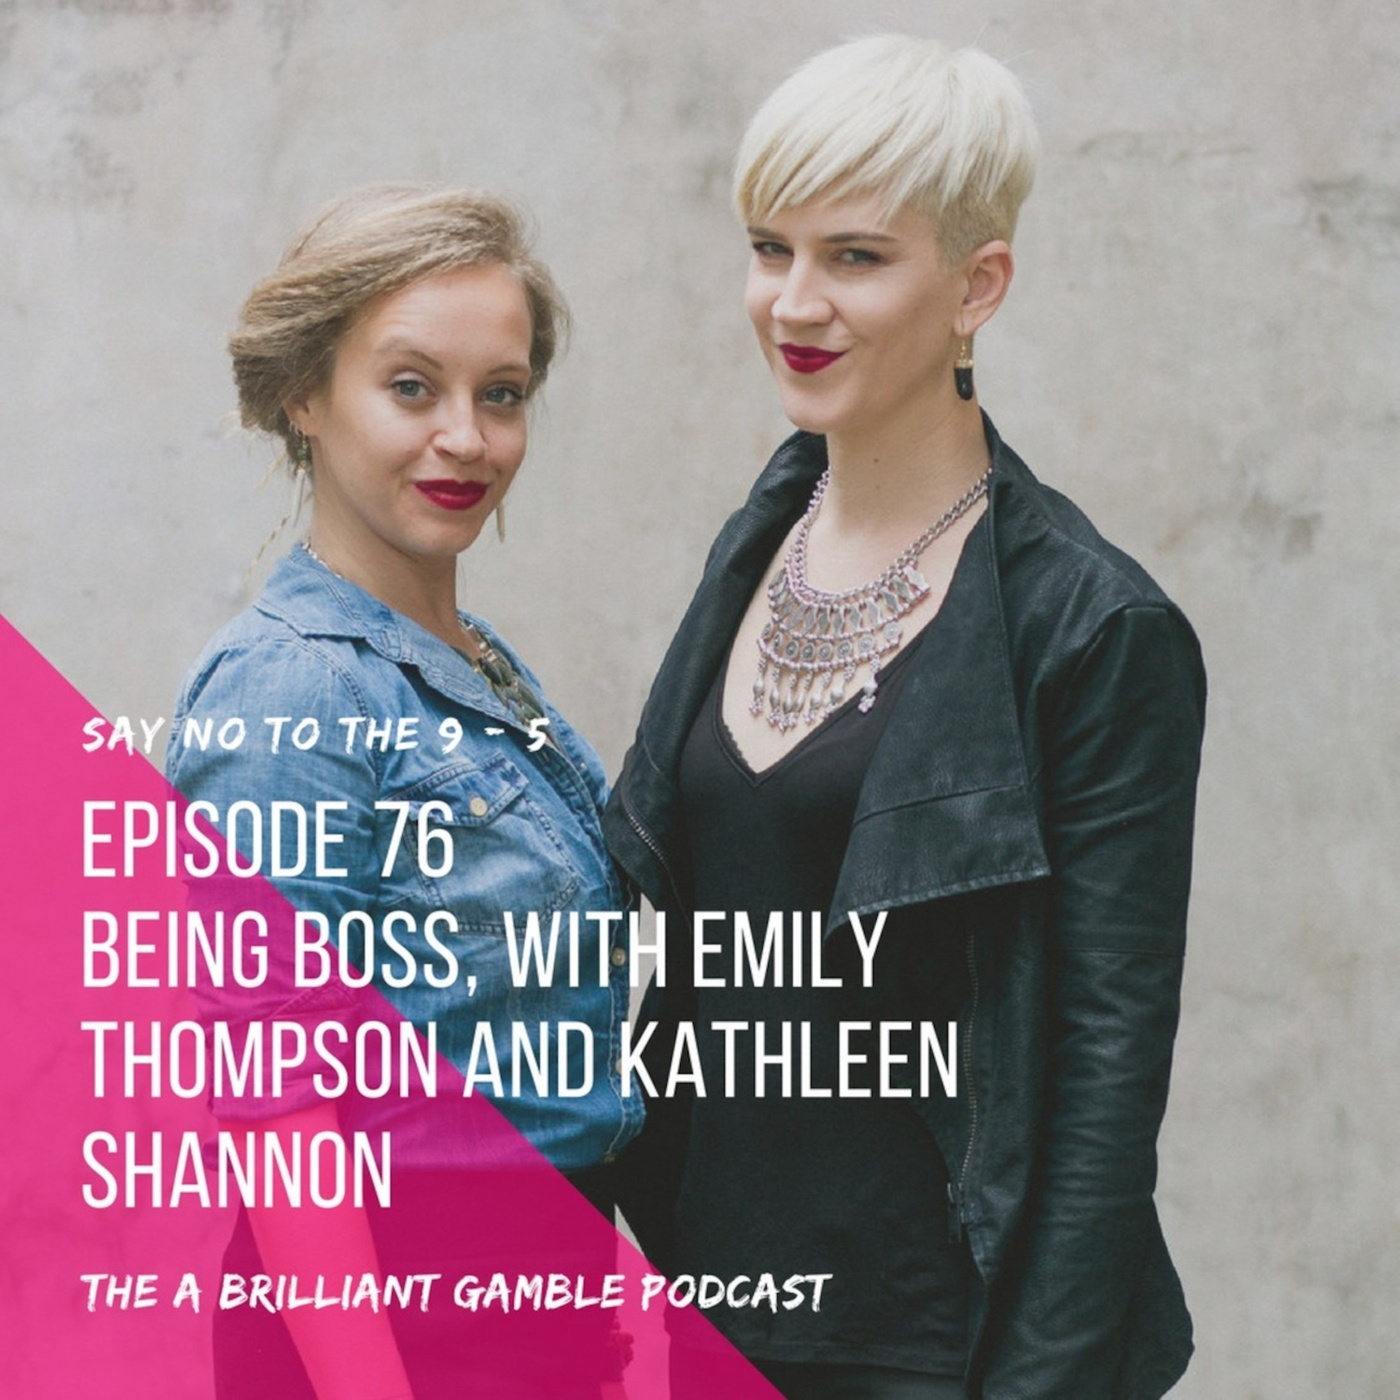 76 Being Boss with Emily Thompson and Kathleen Shannon